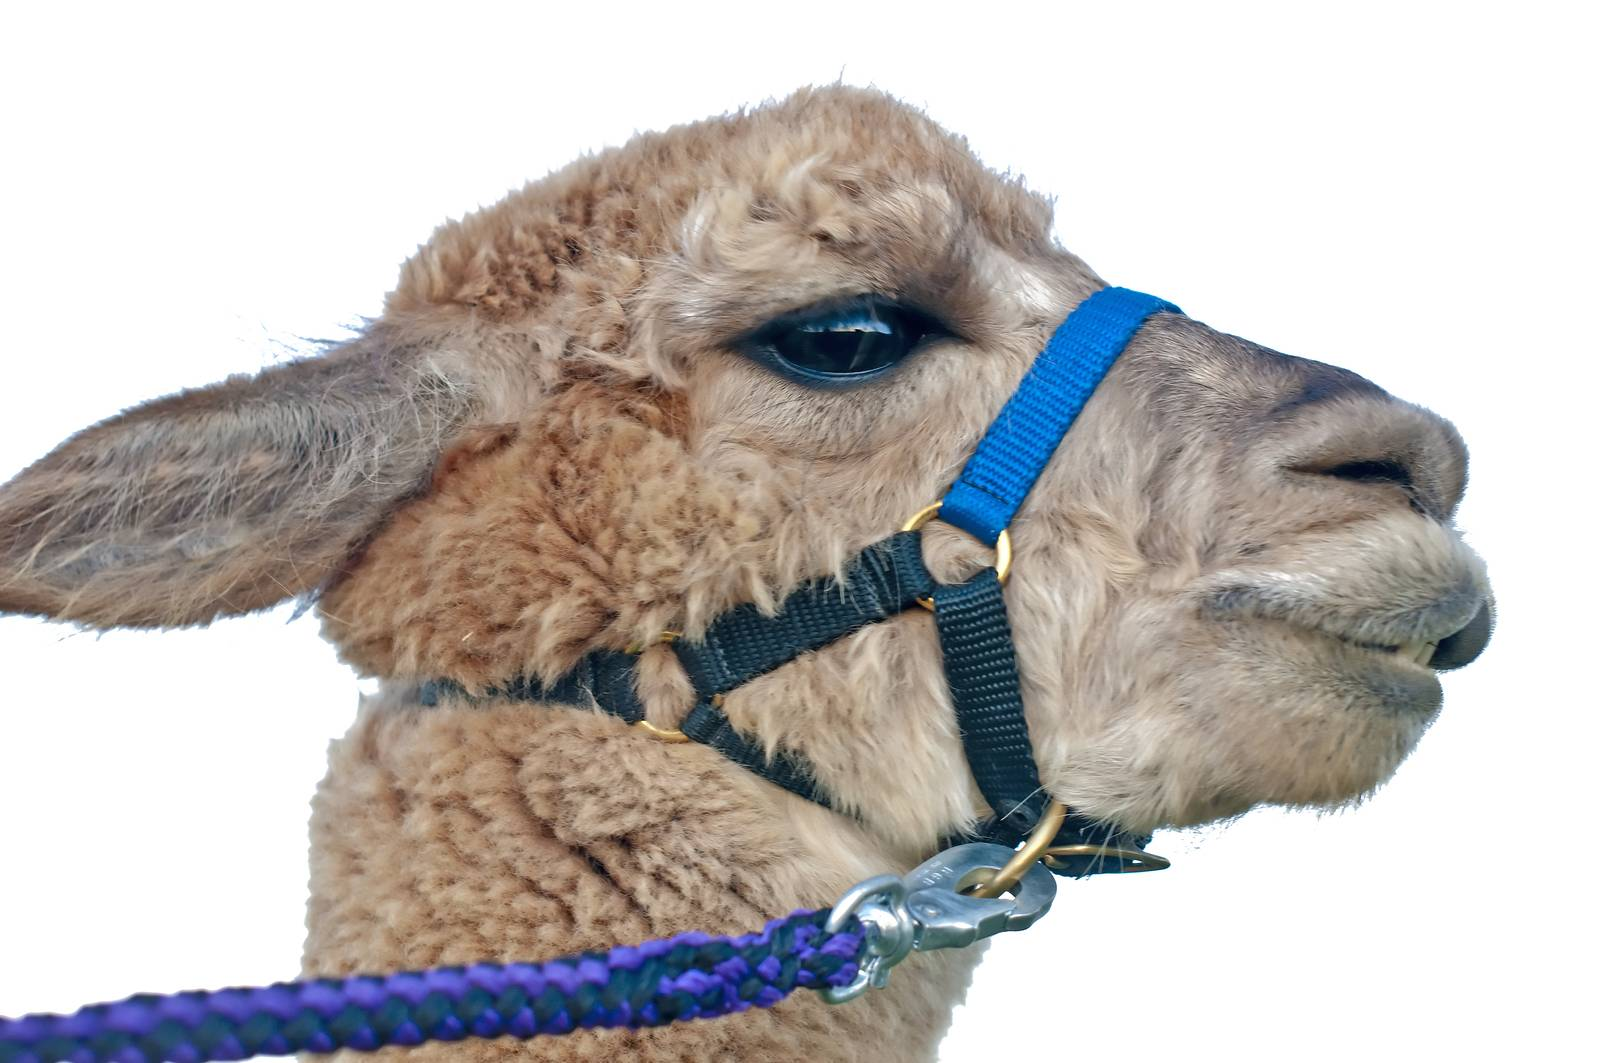 AAT, assisted animal therapy, adorable, alpaca, America, Andes - D34298272